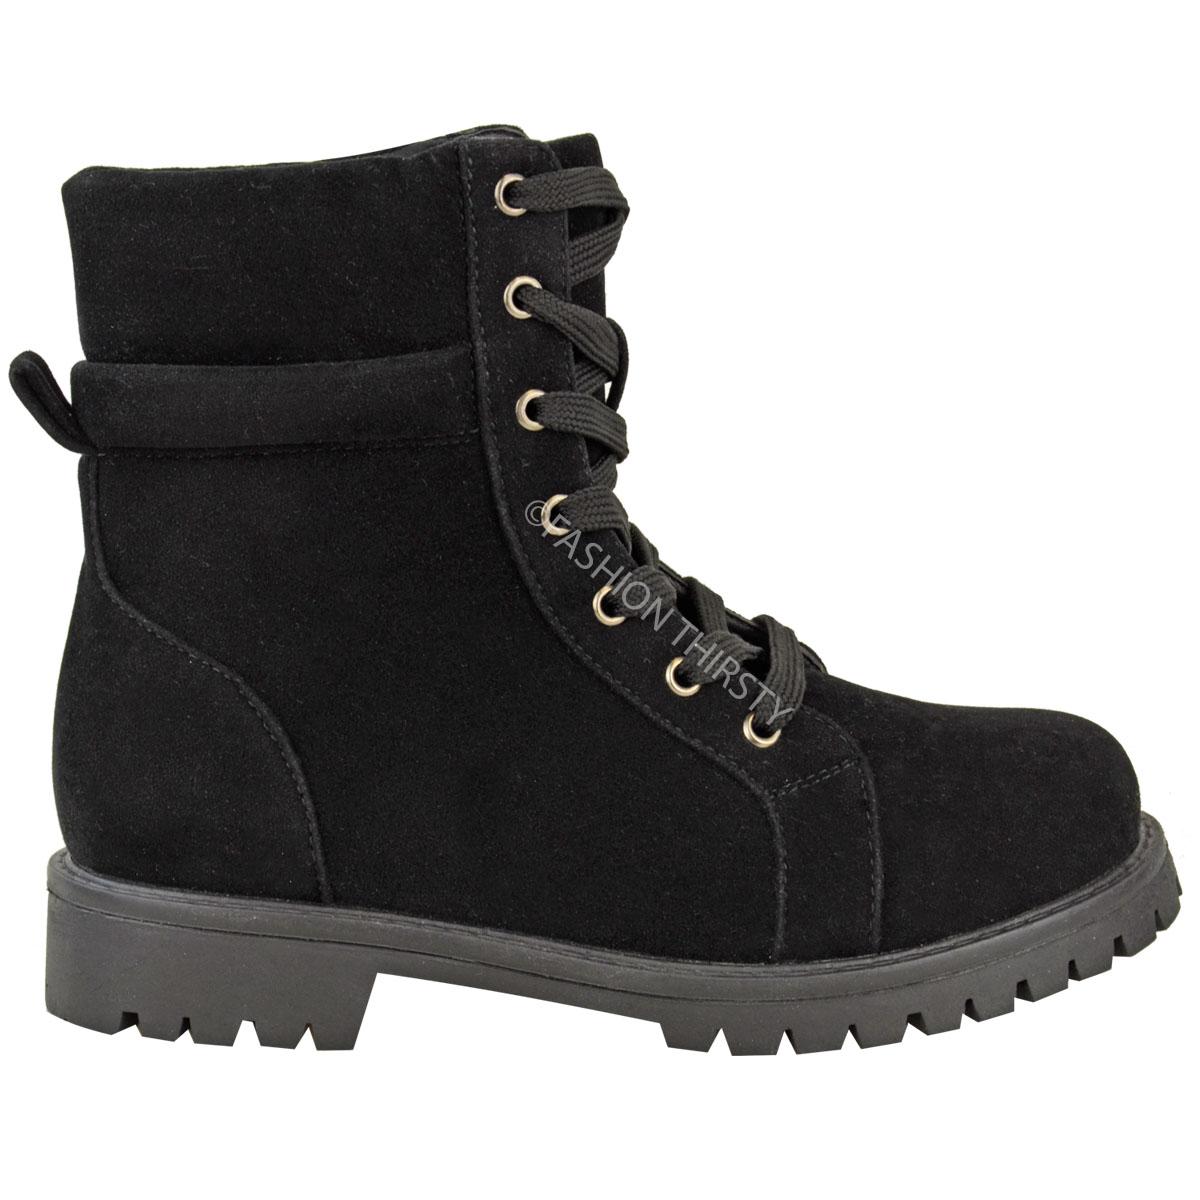 Perfect Womens Combat Style Army Worker Military Ankle Boots Flat Punk Goth Shoes Size | EBay